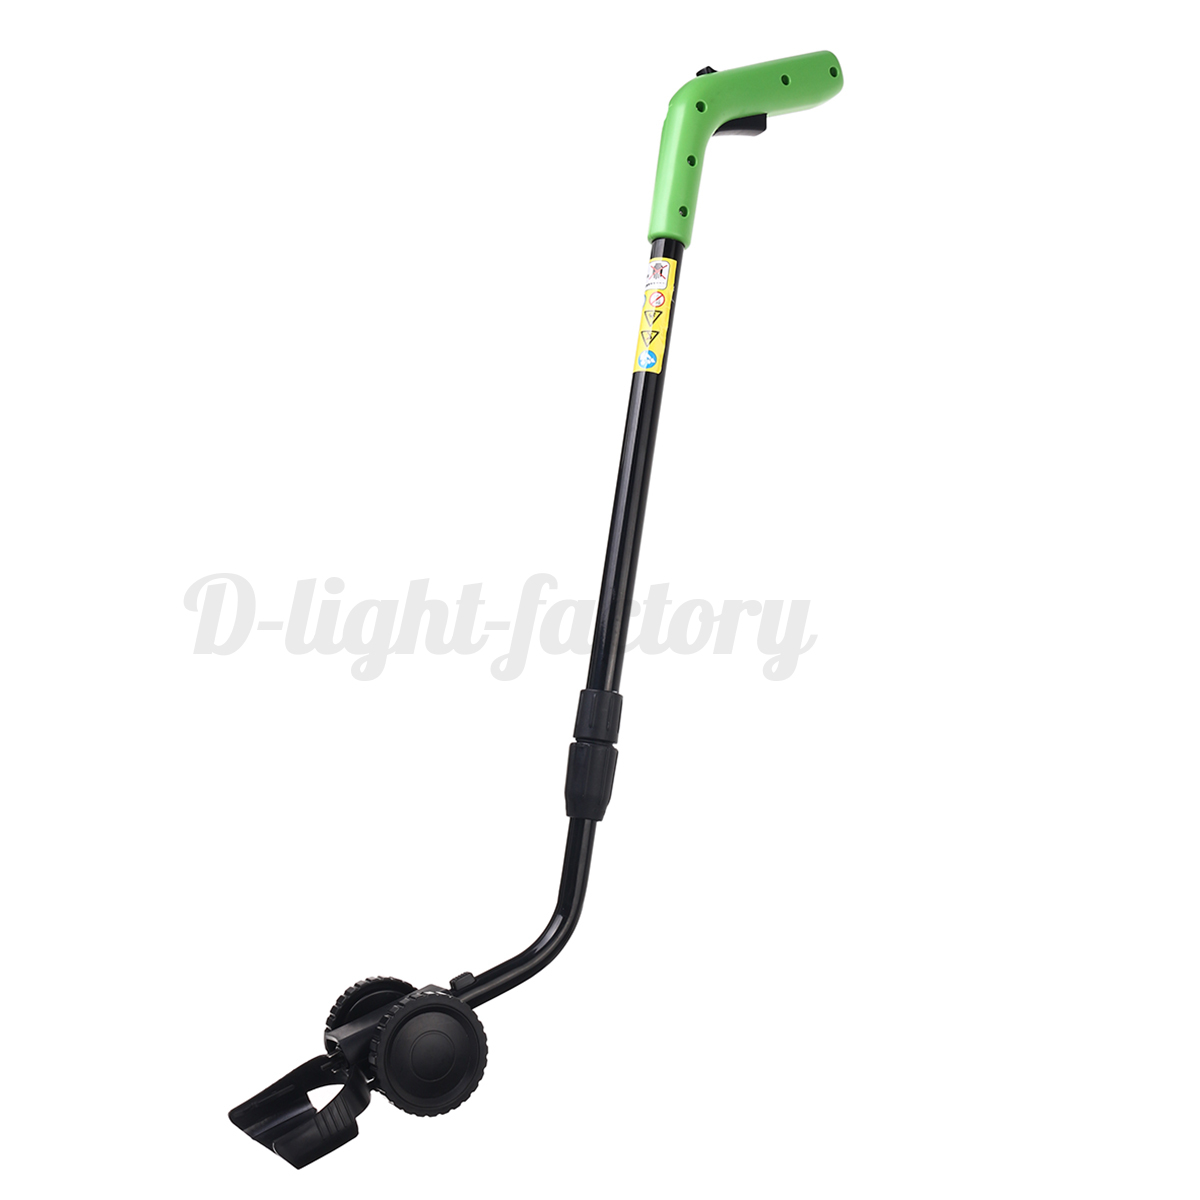 Cordless-Grass-Shear-Lawnmower-Garden-Pruning-Hedge-Trimmer-Rod-Wheel-Holder thumbnail 10